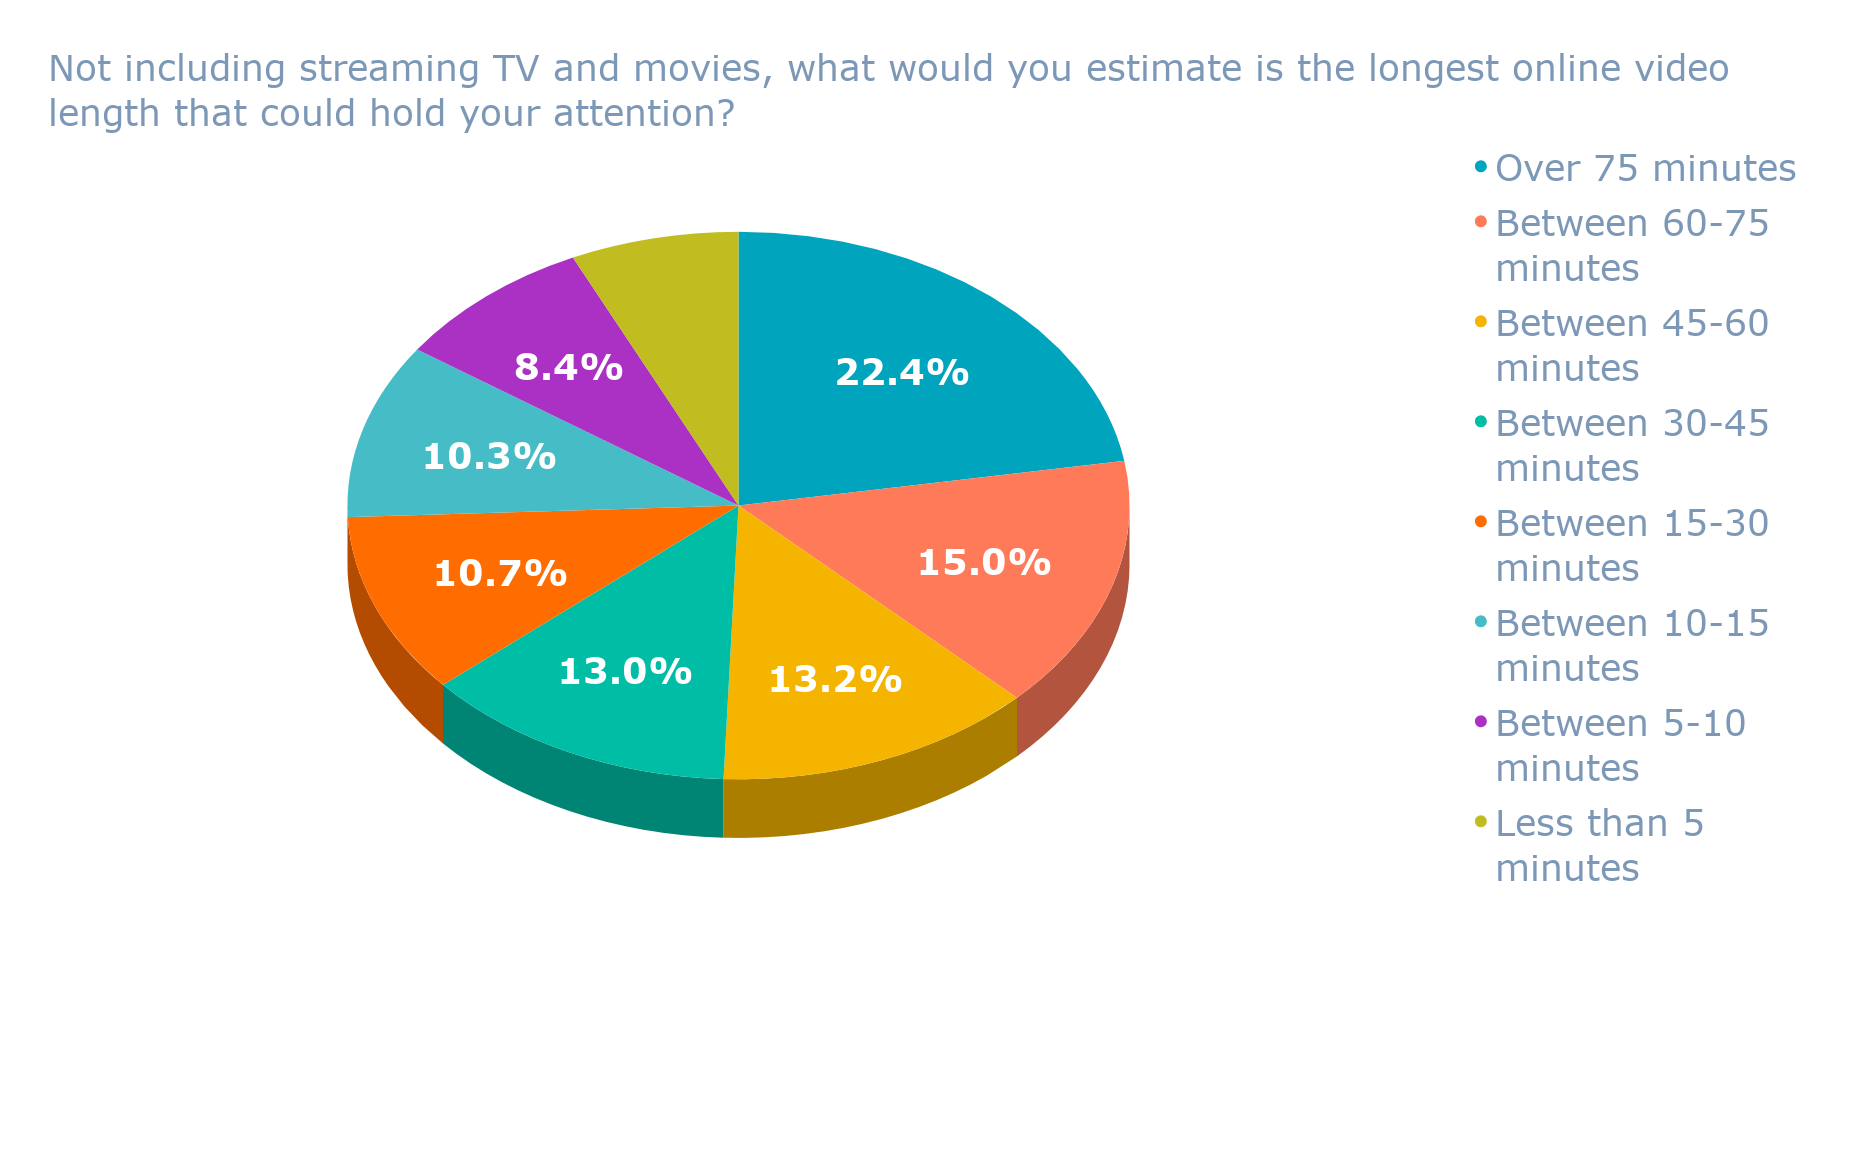 Not including streaming TV and movies, what would you estimate is the longest online video length that could hold your attention_ (1)